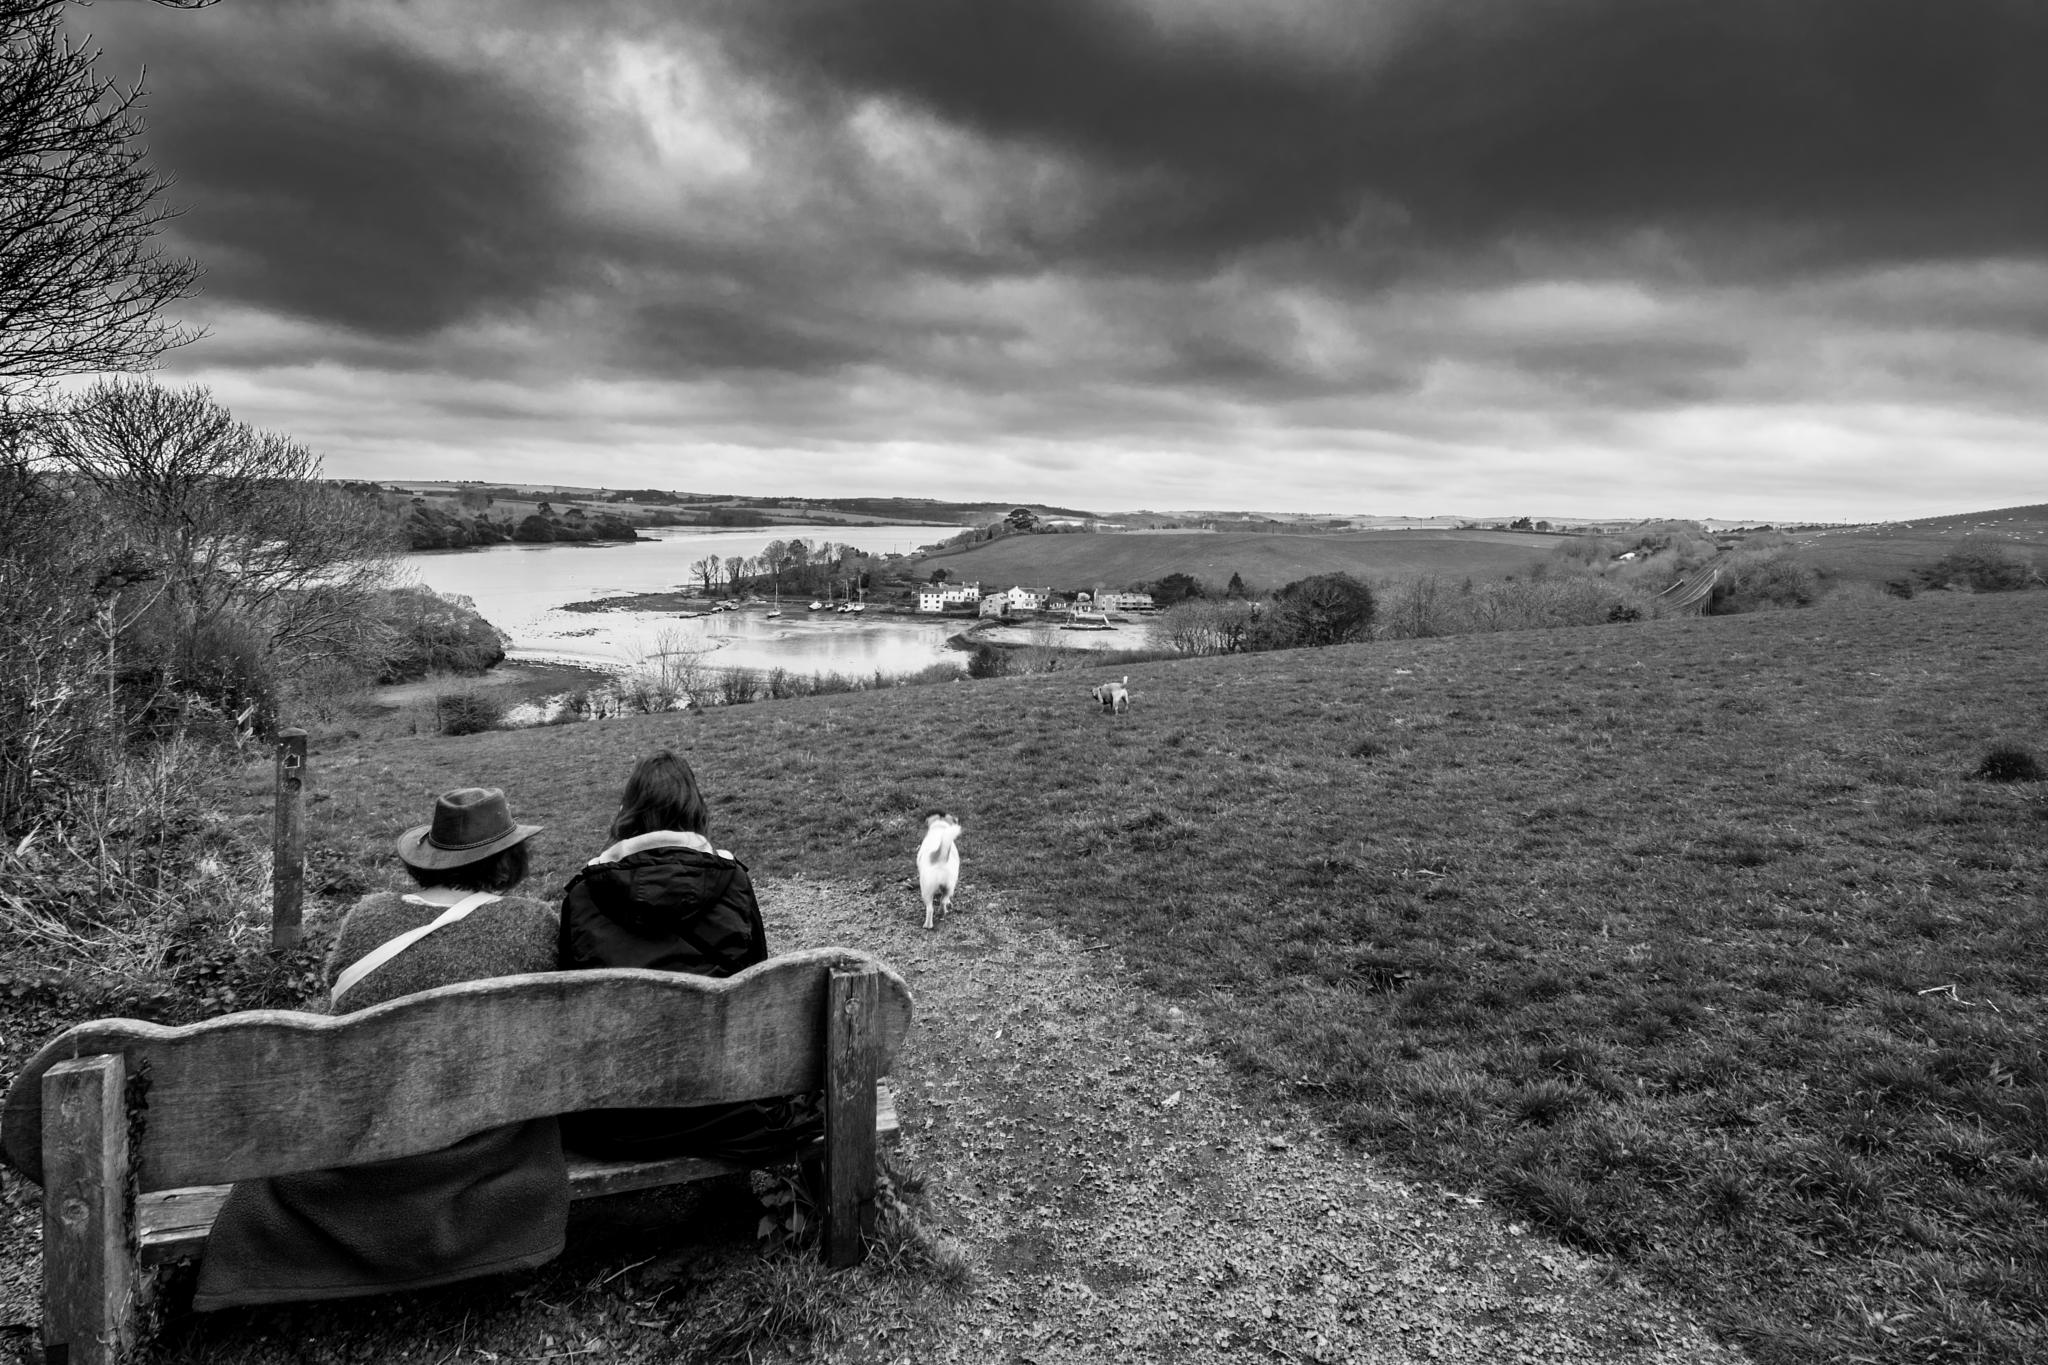 looking at the view by phillip ticehurst